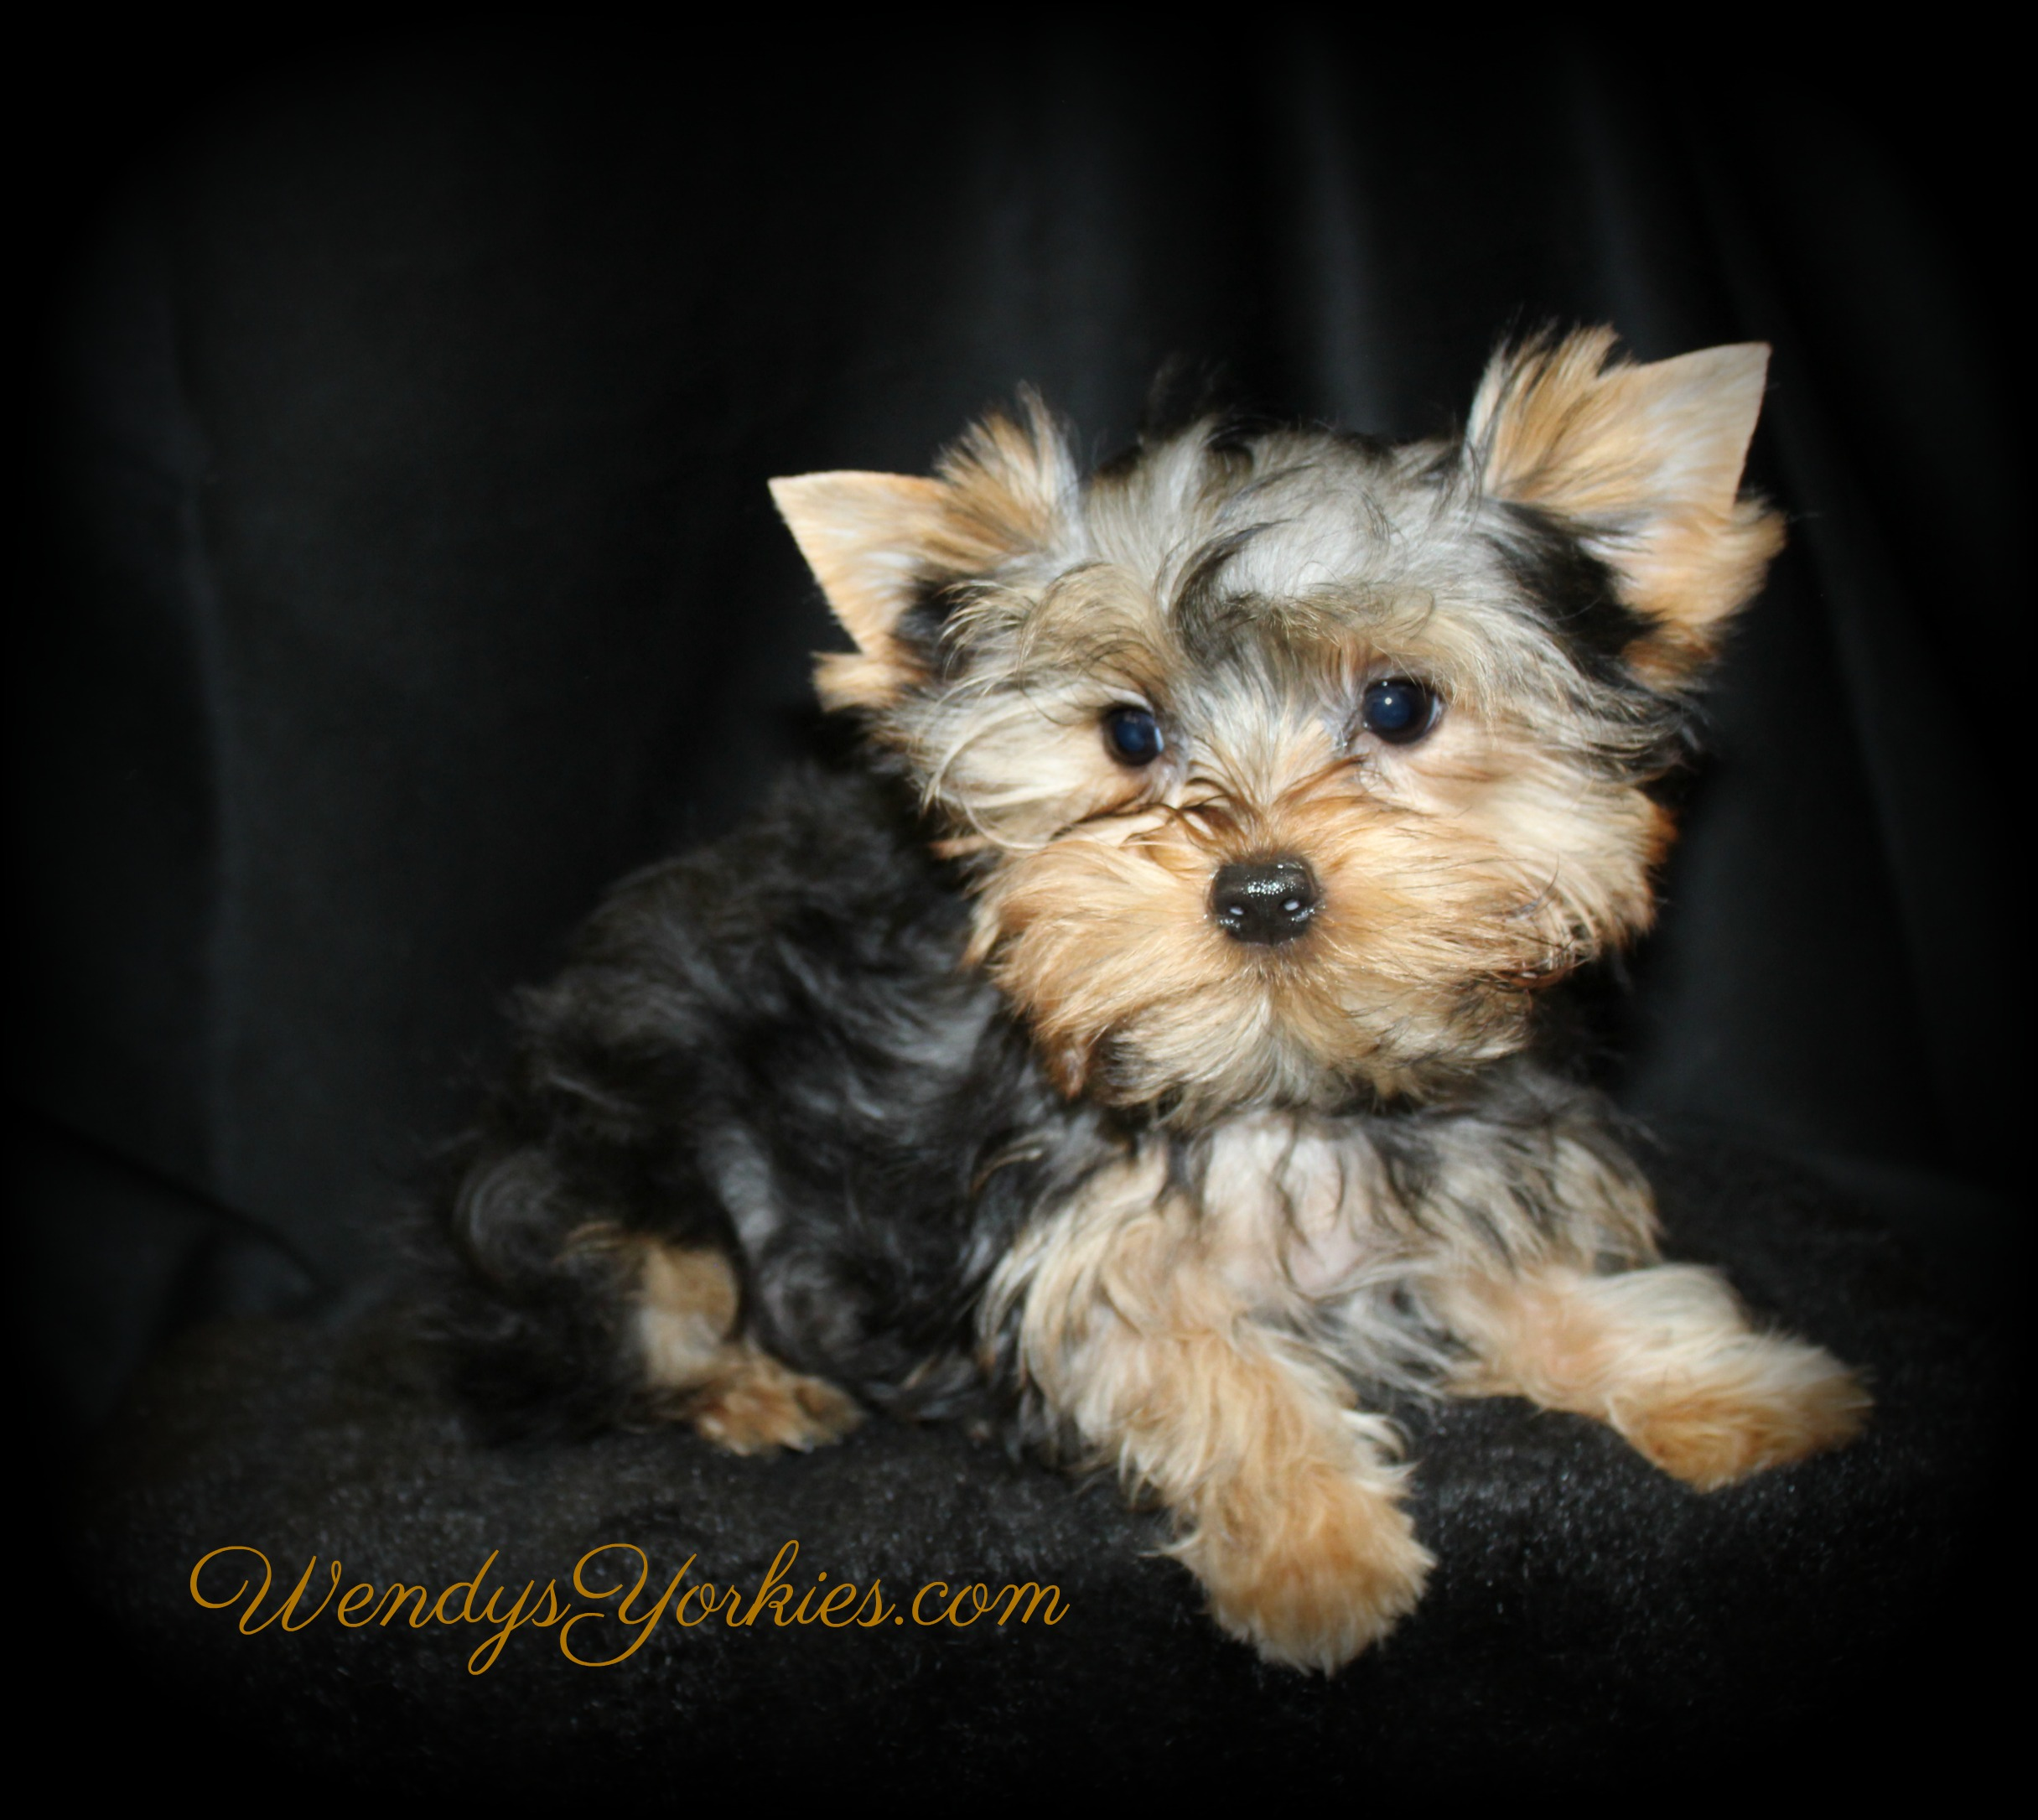 Teacup Yorkie puppy for sale, Ritz, WendysYorkies.com